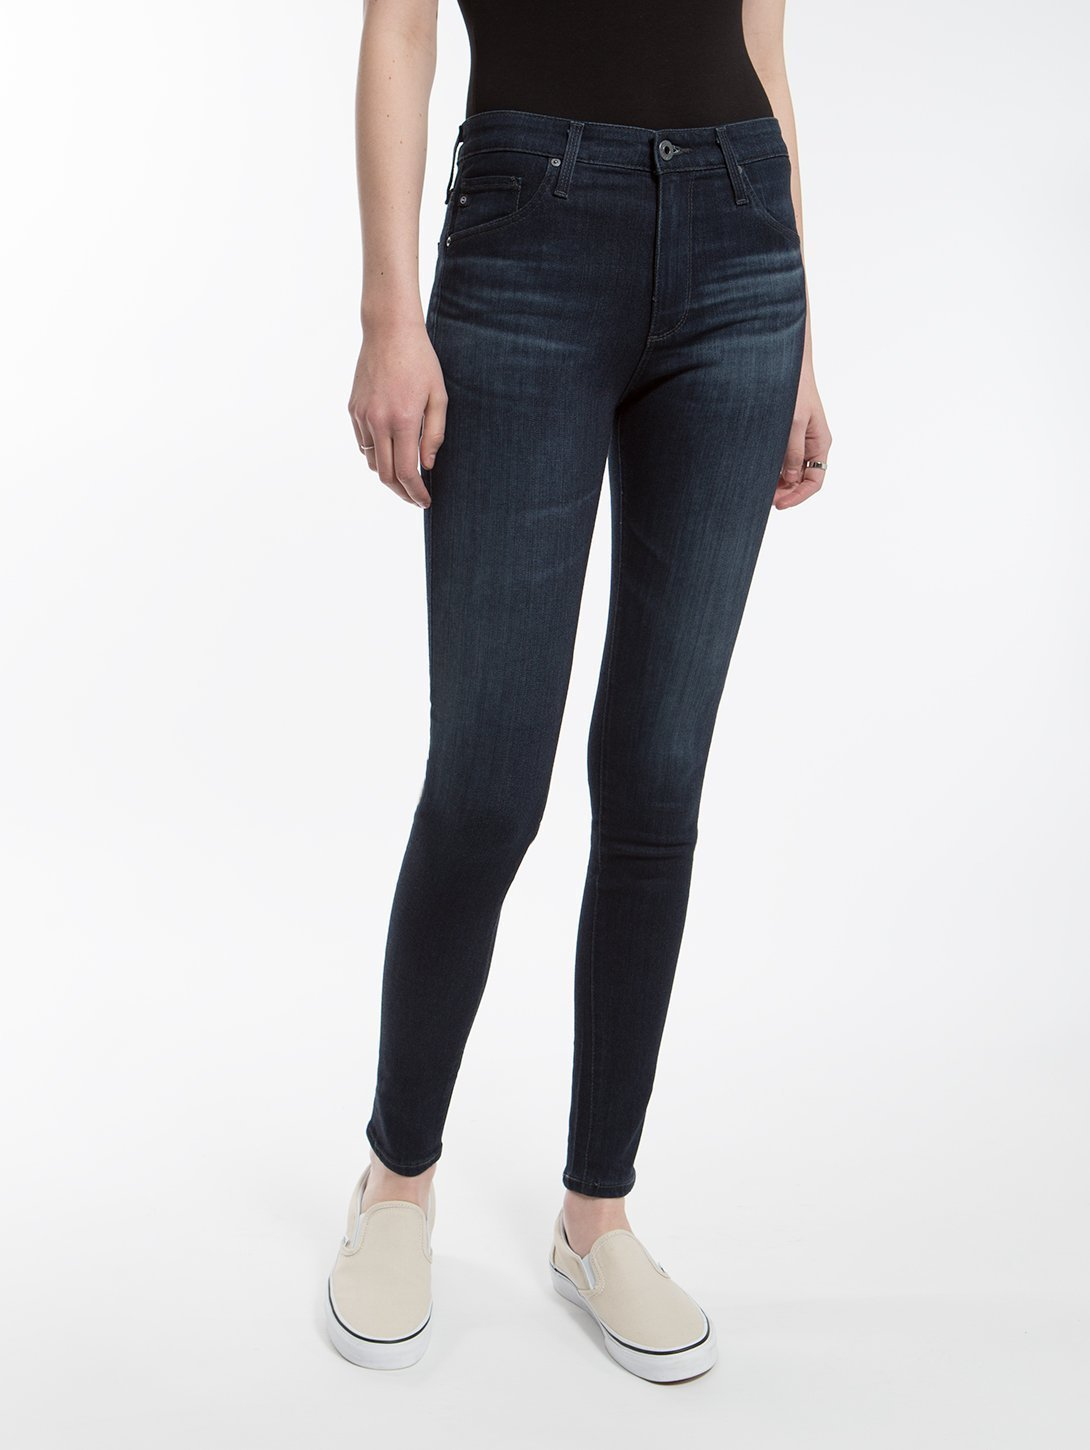 Farrah Brooks Jean-AG Jeans-Over the Rainbow